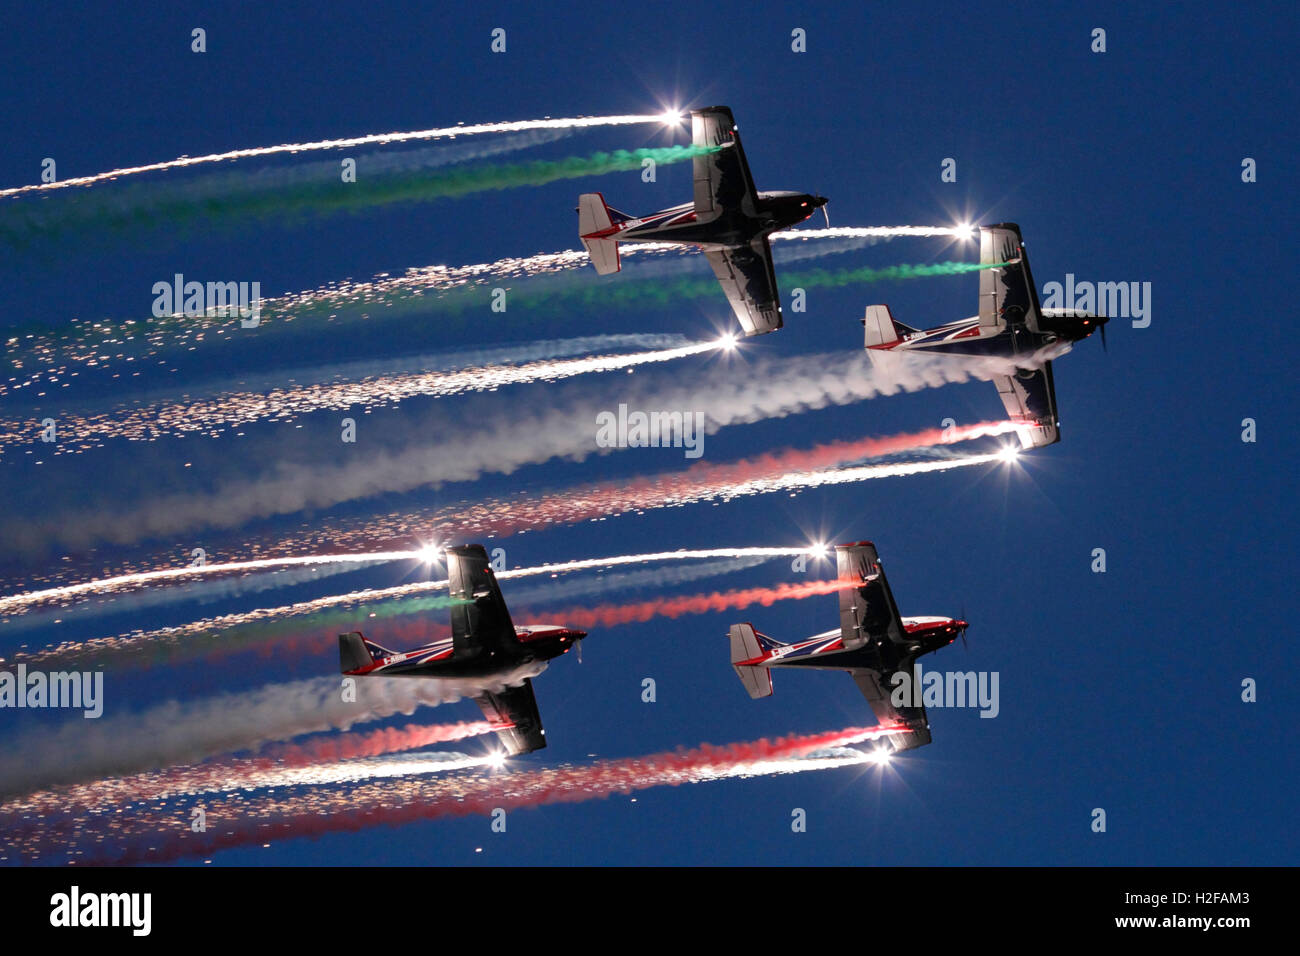 The Pioneer Team flying their Alpi Aviation Pioneer 300 aircraft in a spectacular airshow display at dusk - Stock Image